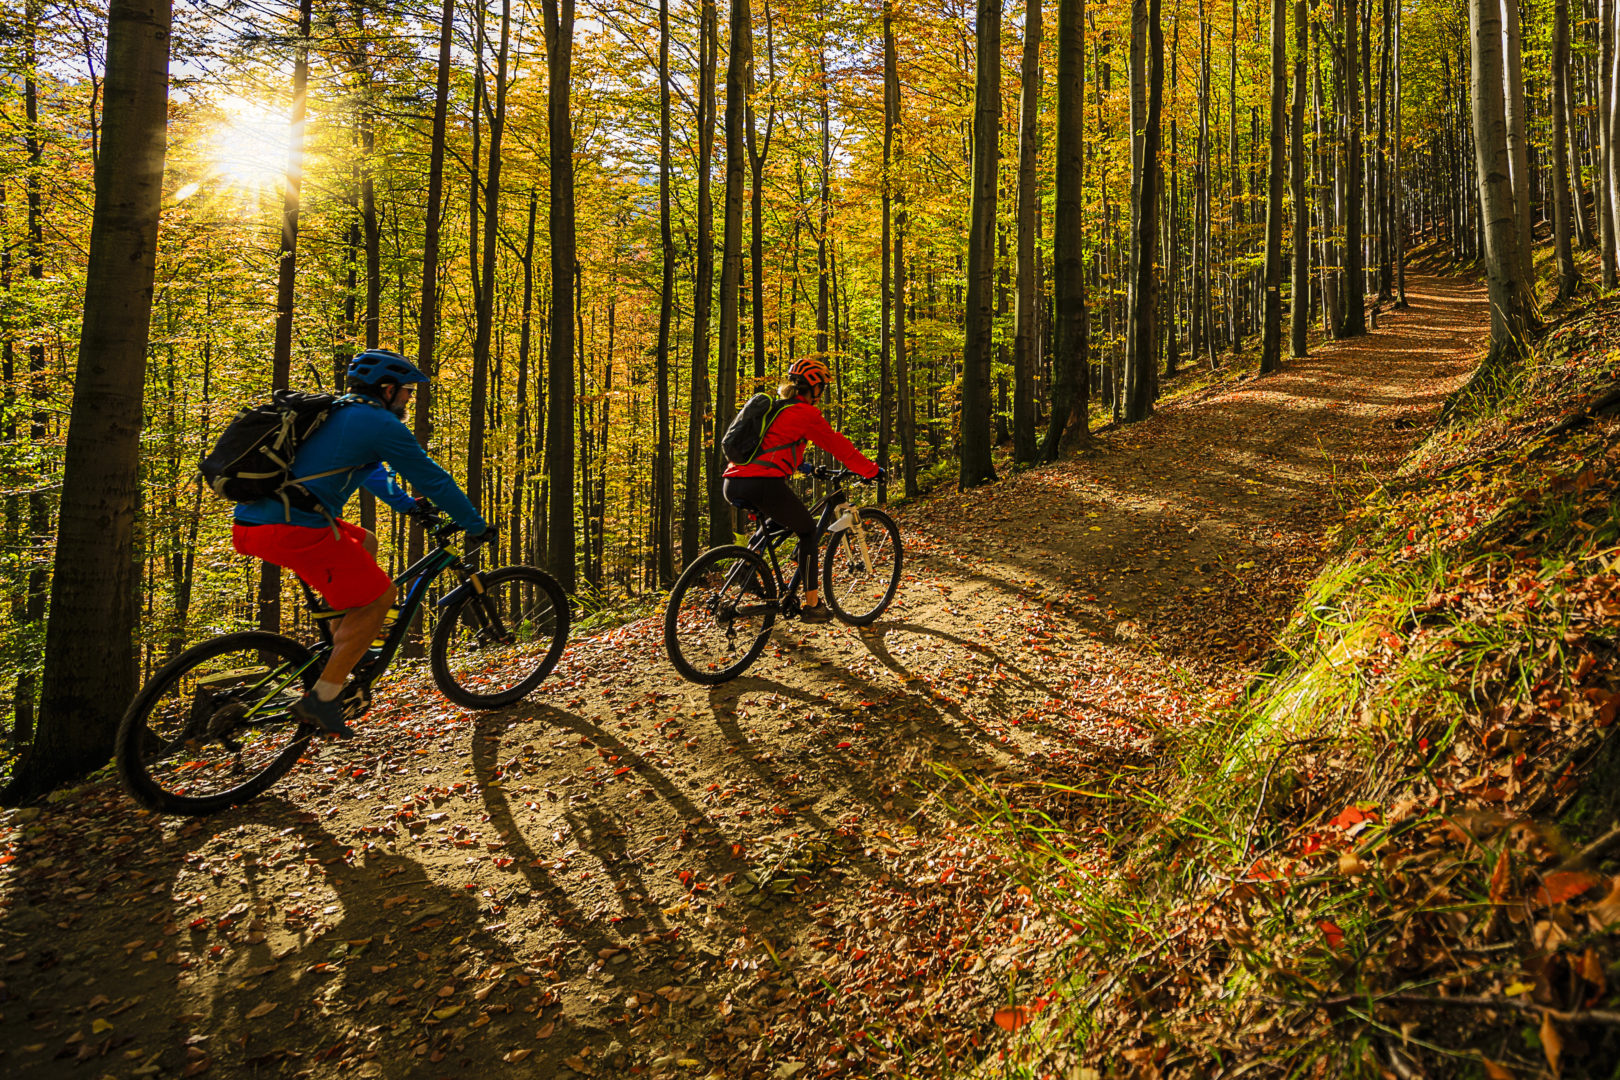 Two people biking up trail in forest during fall